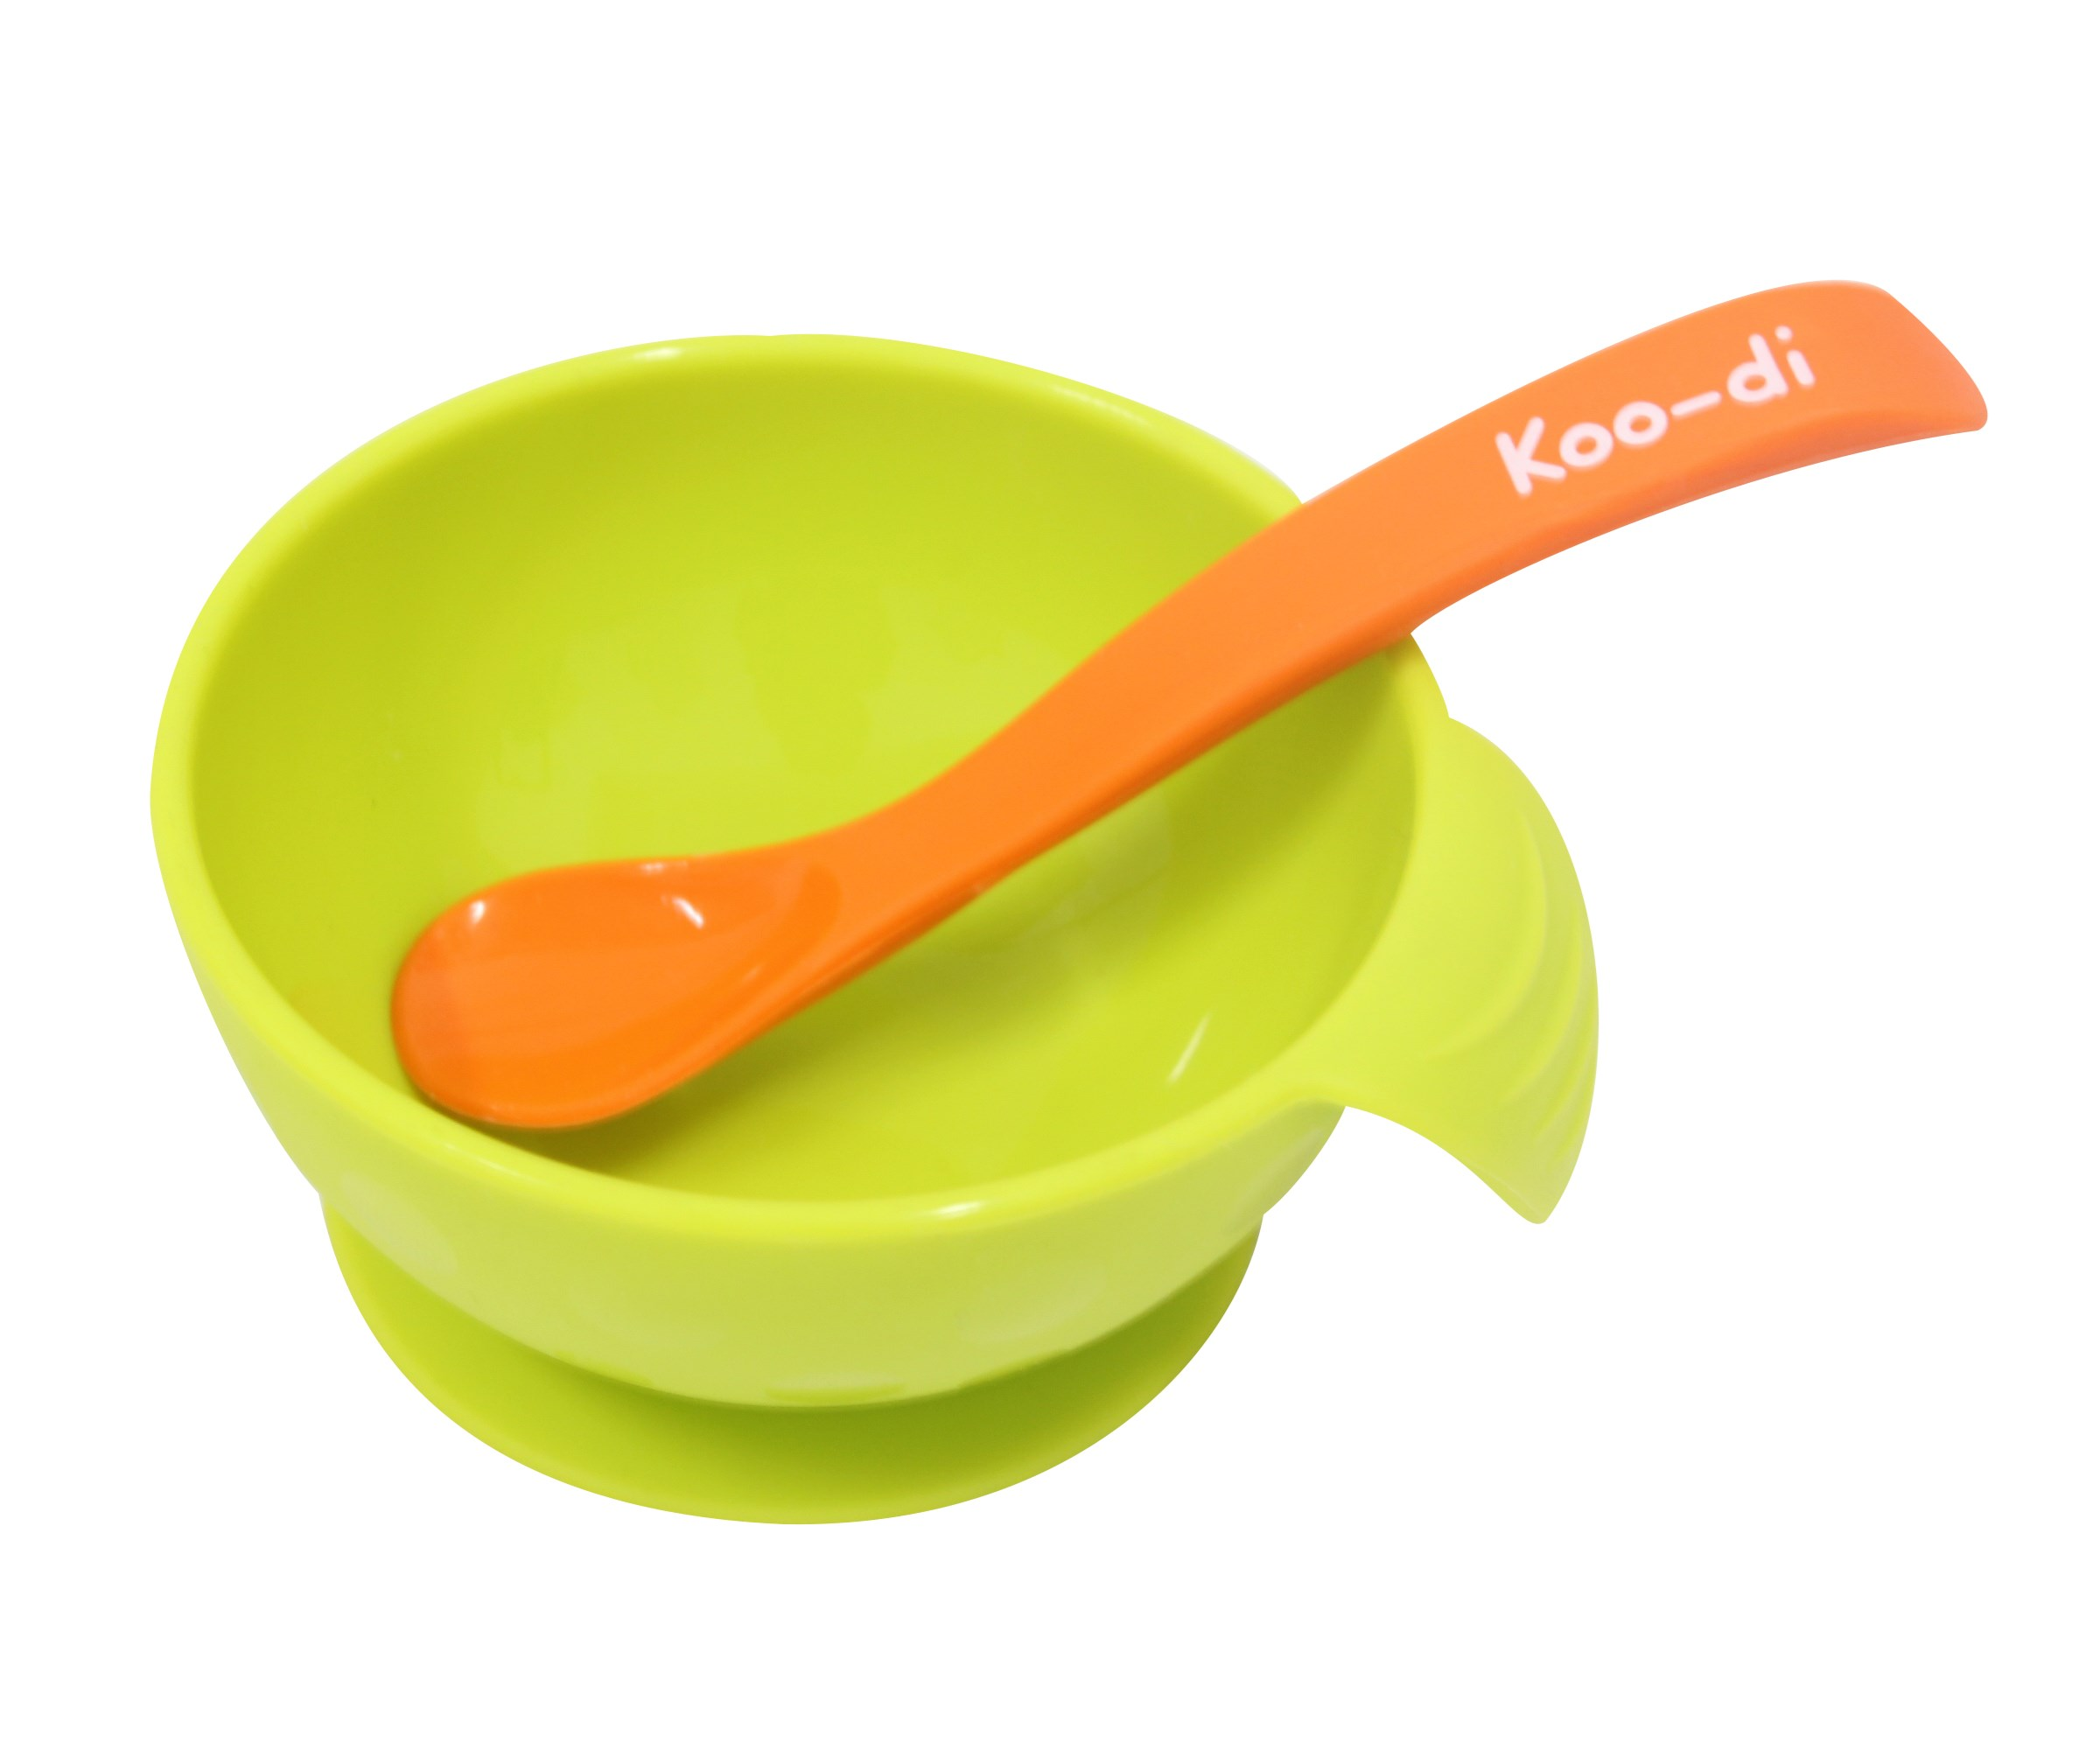 Koo-di Feed Me Silicone Bowl and Spoon, Lime and Orange